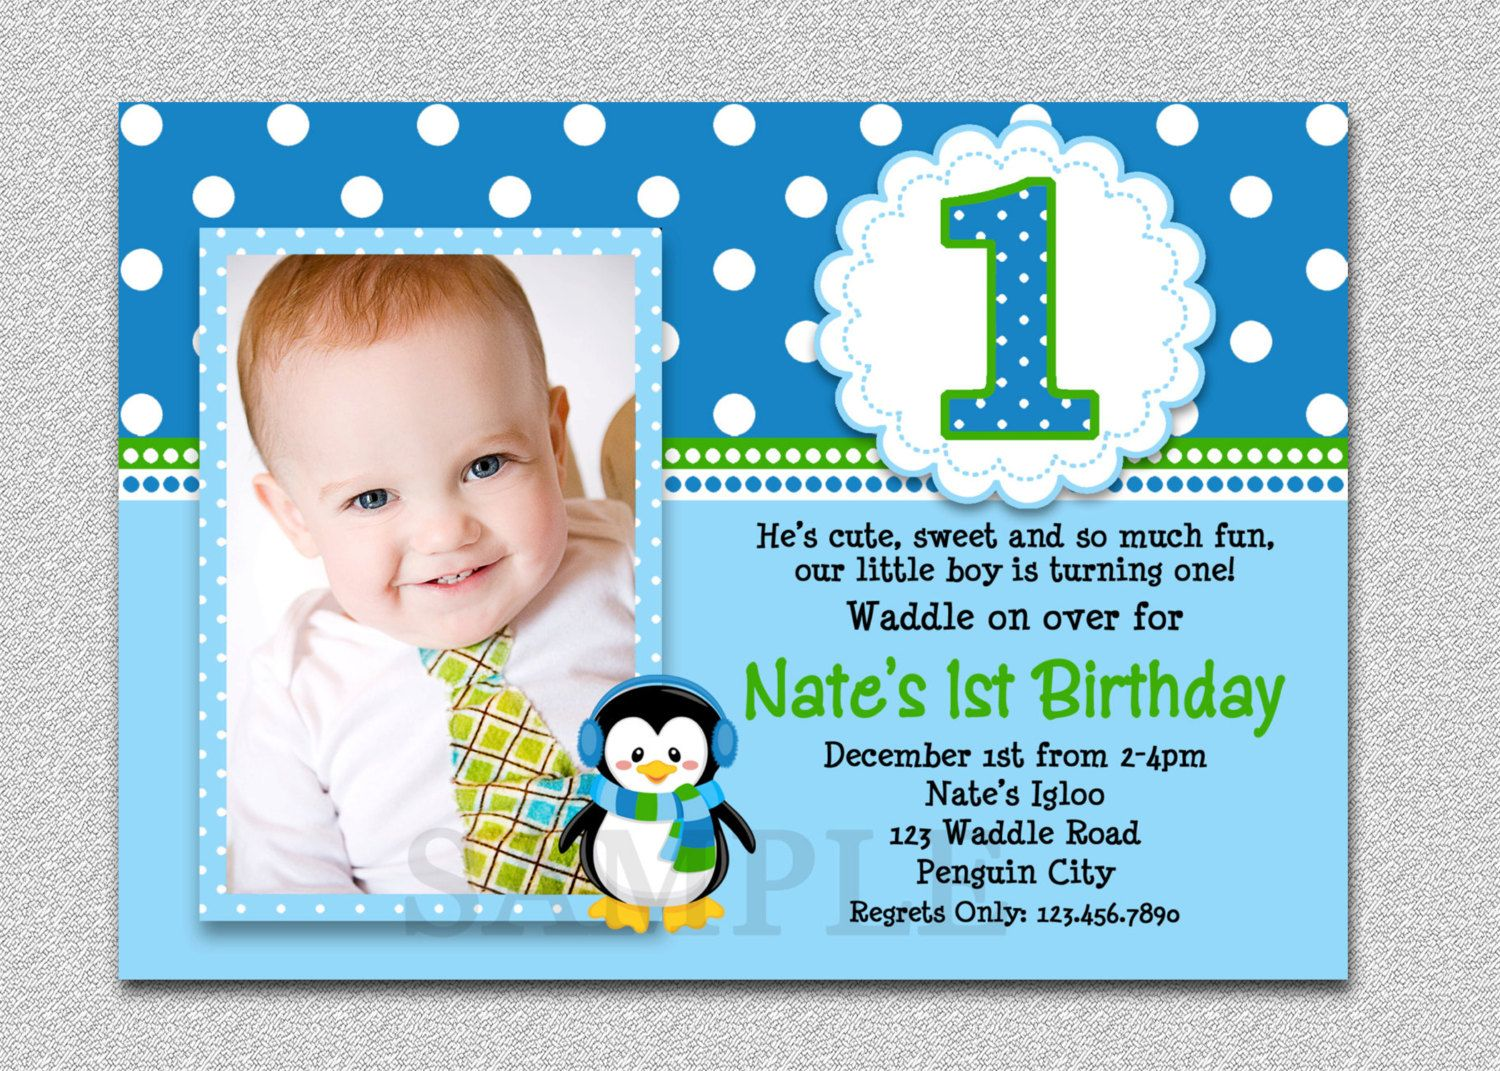 1st birthday invitations 21st bridal world wedding ideas and